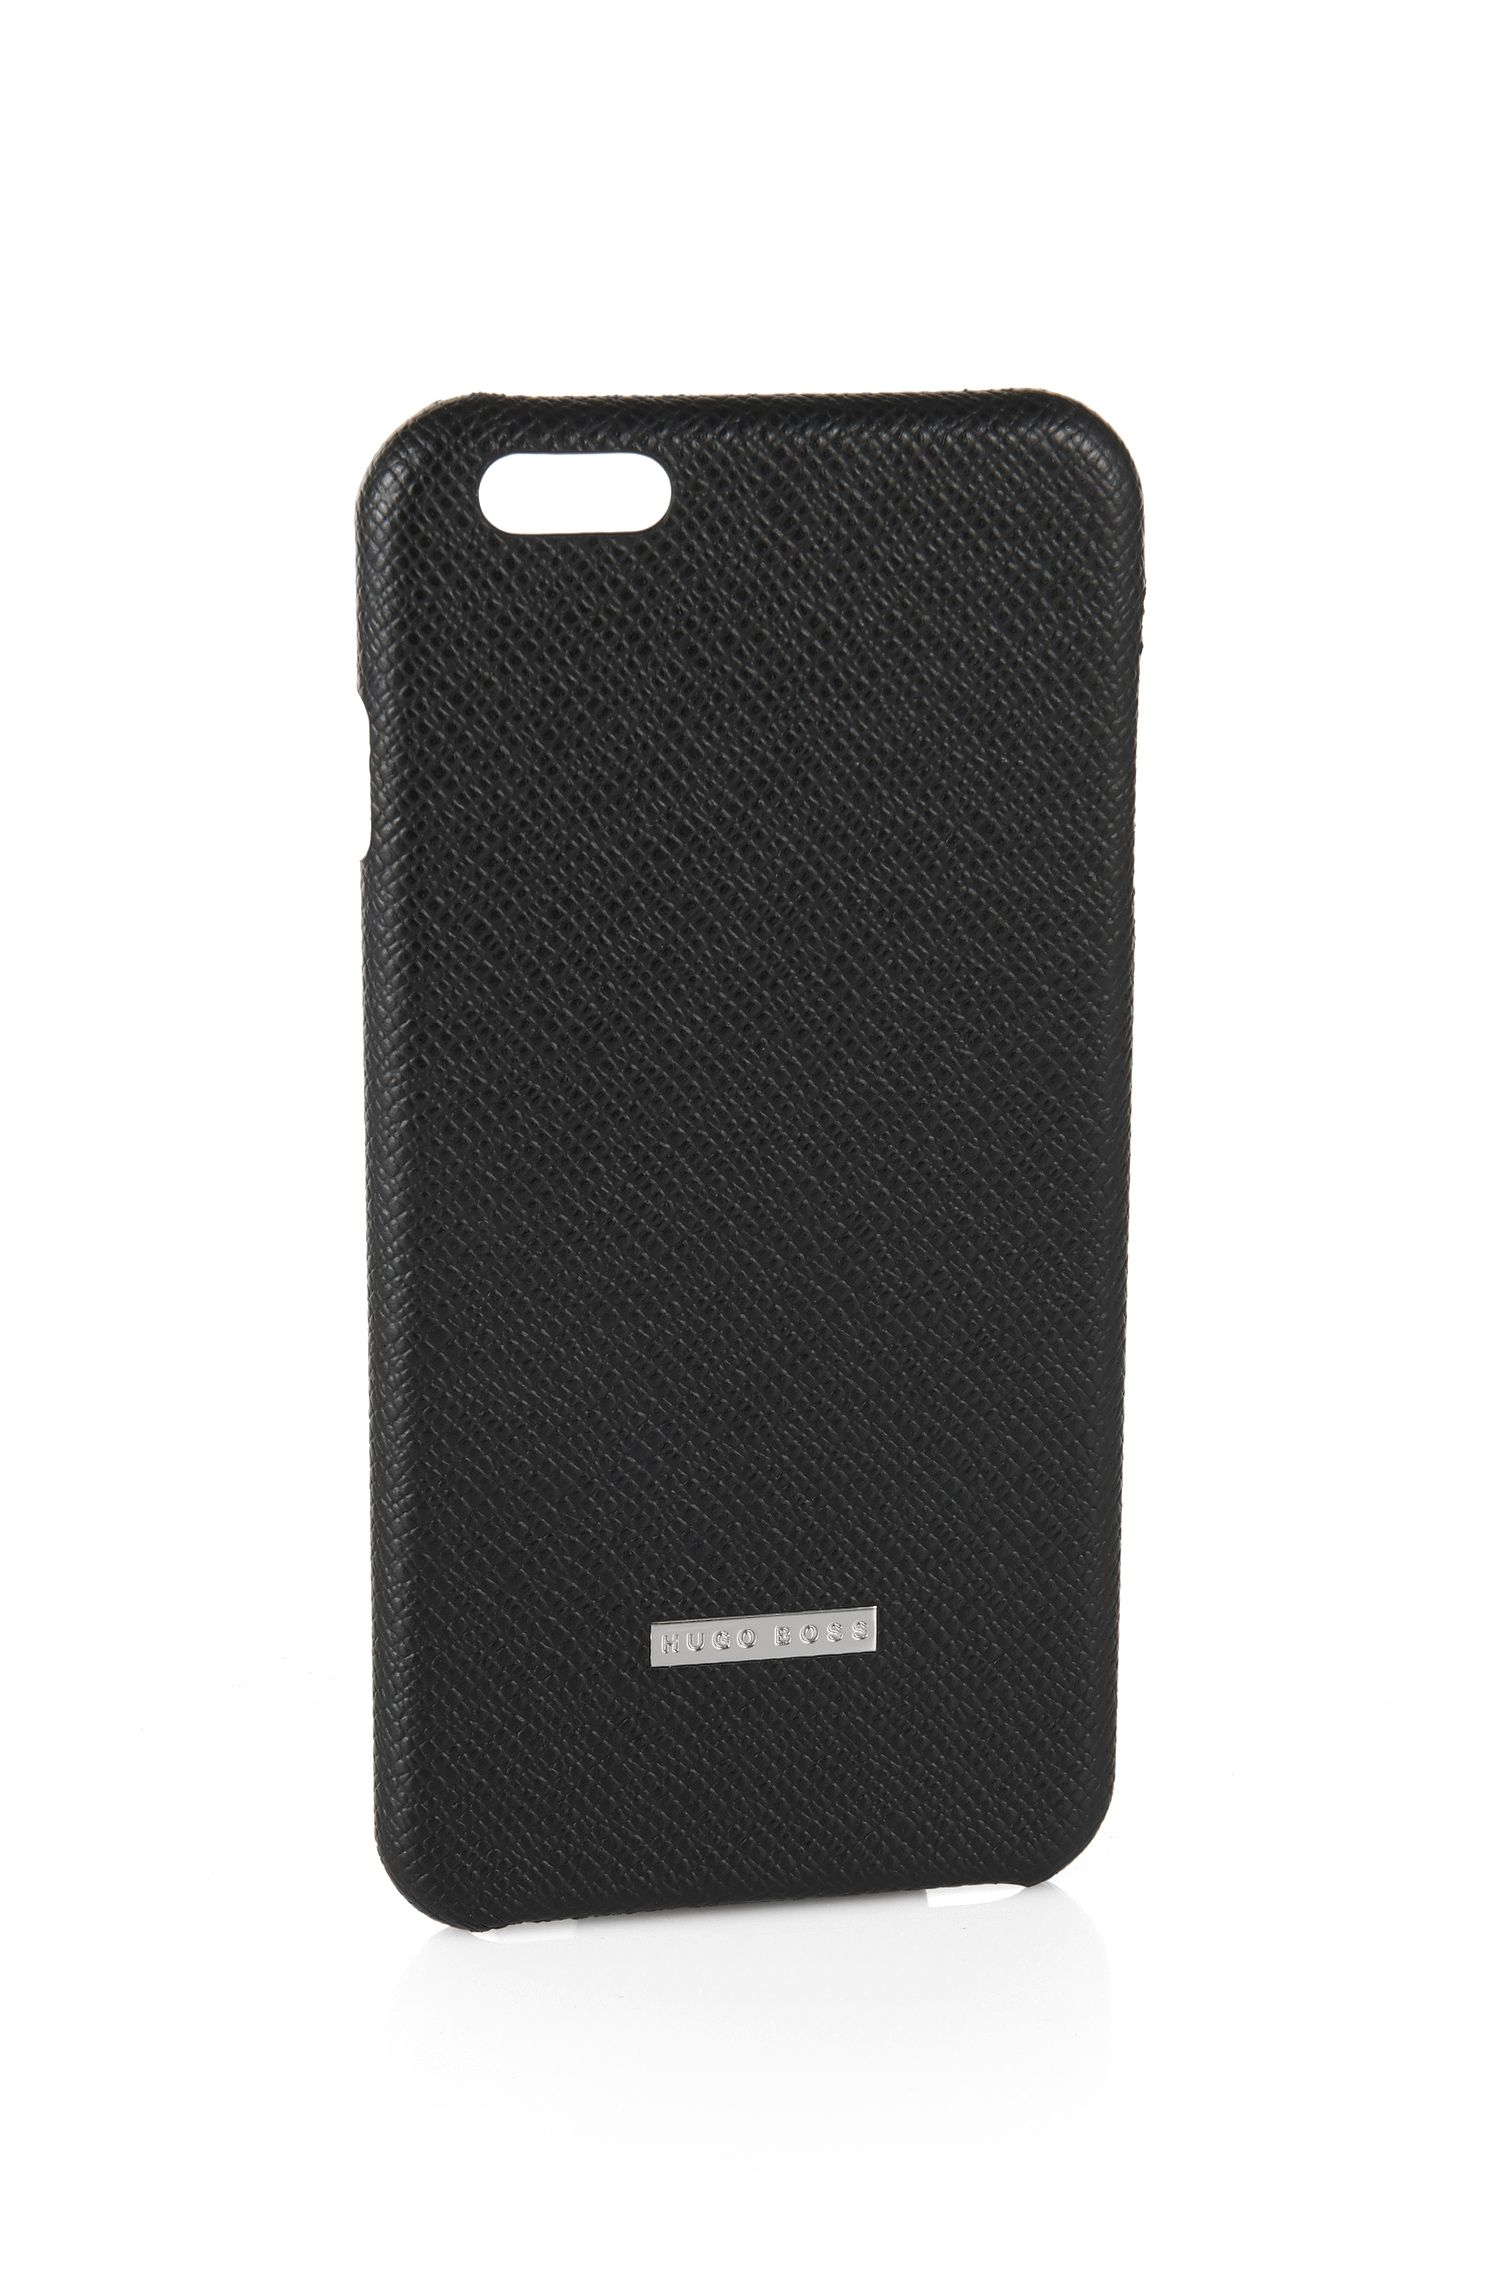 Smartphone cover for the iPhone 6 Plus: 'Signature_ Phone'